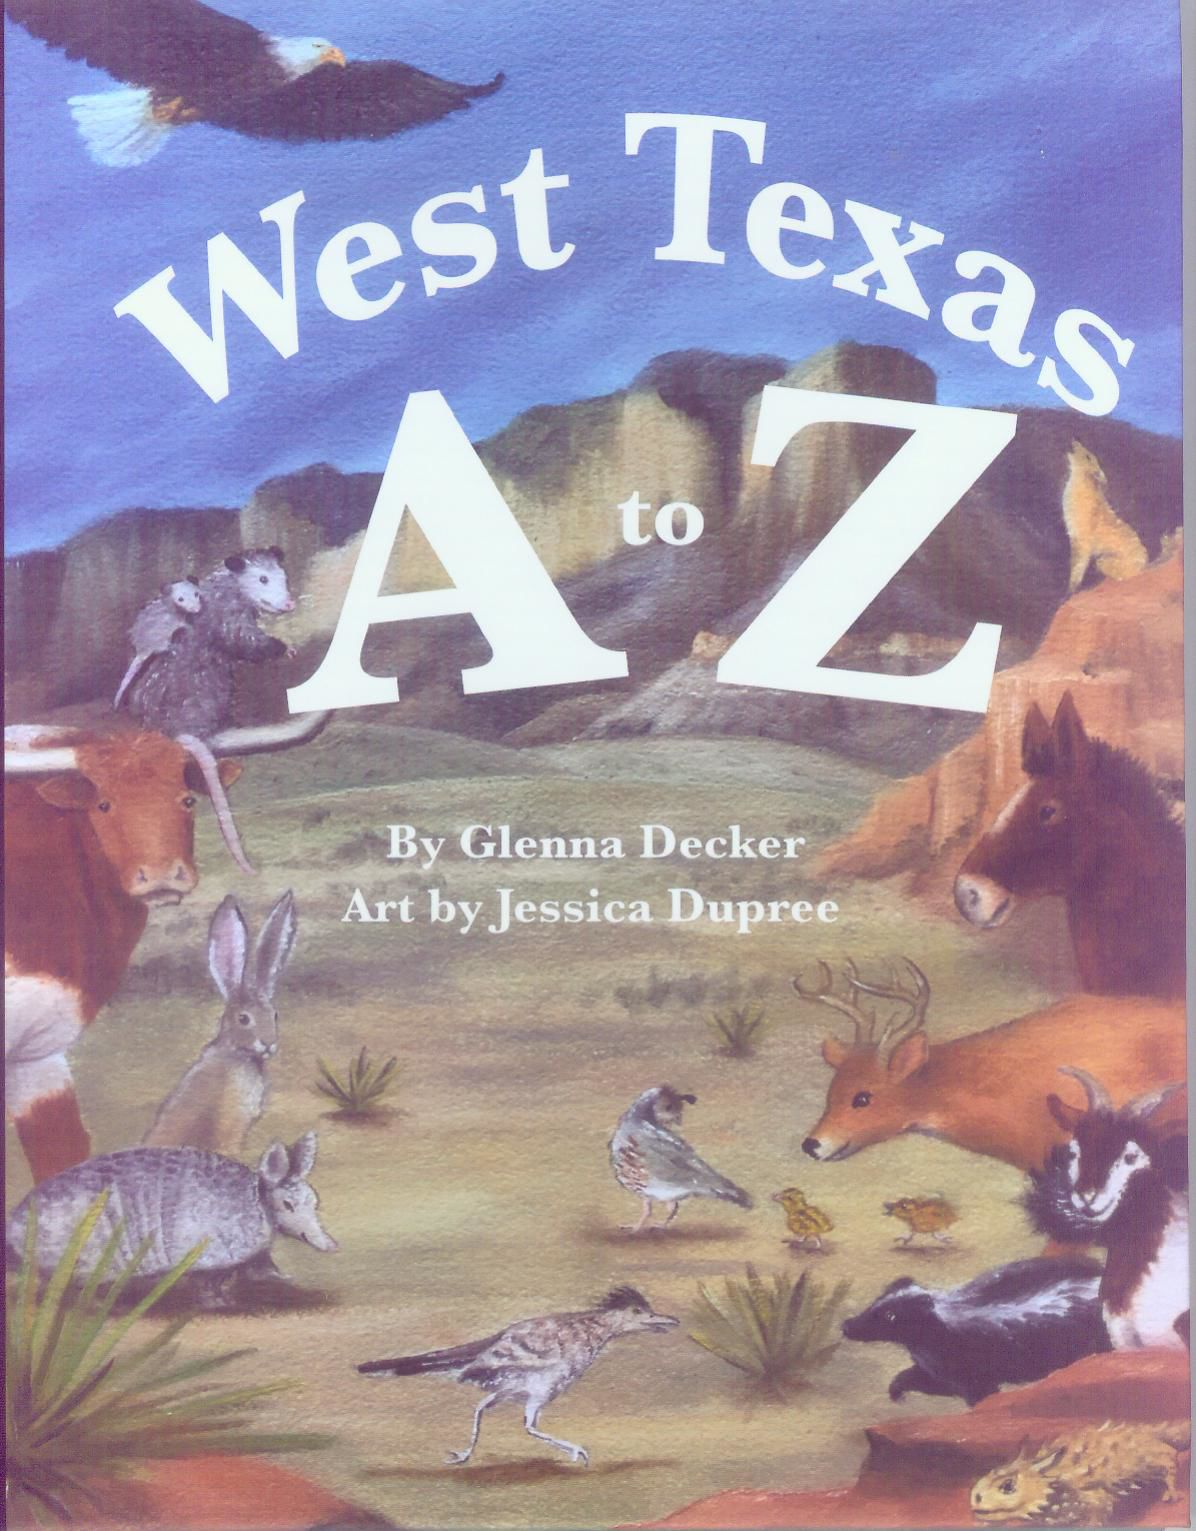 TEXAS READS: 'West Texas A to Z'